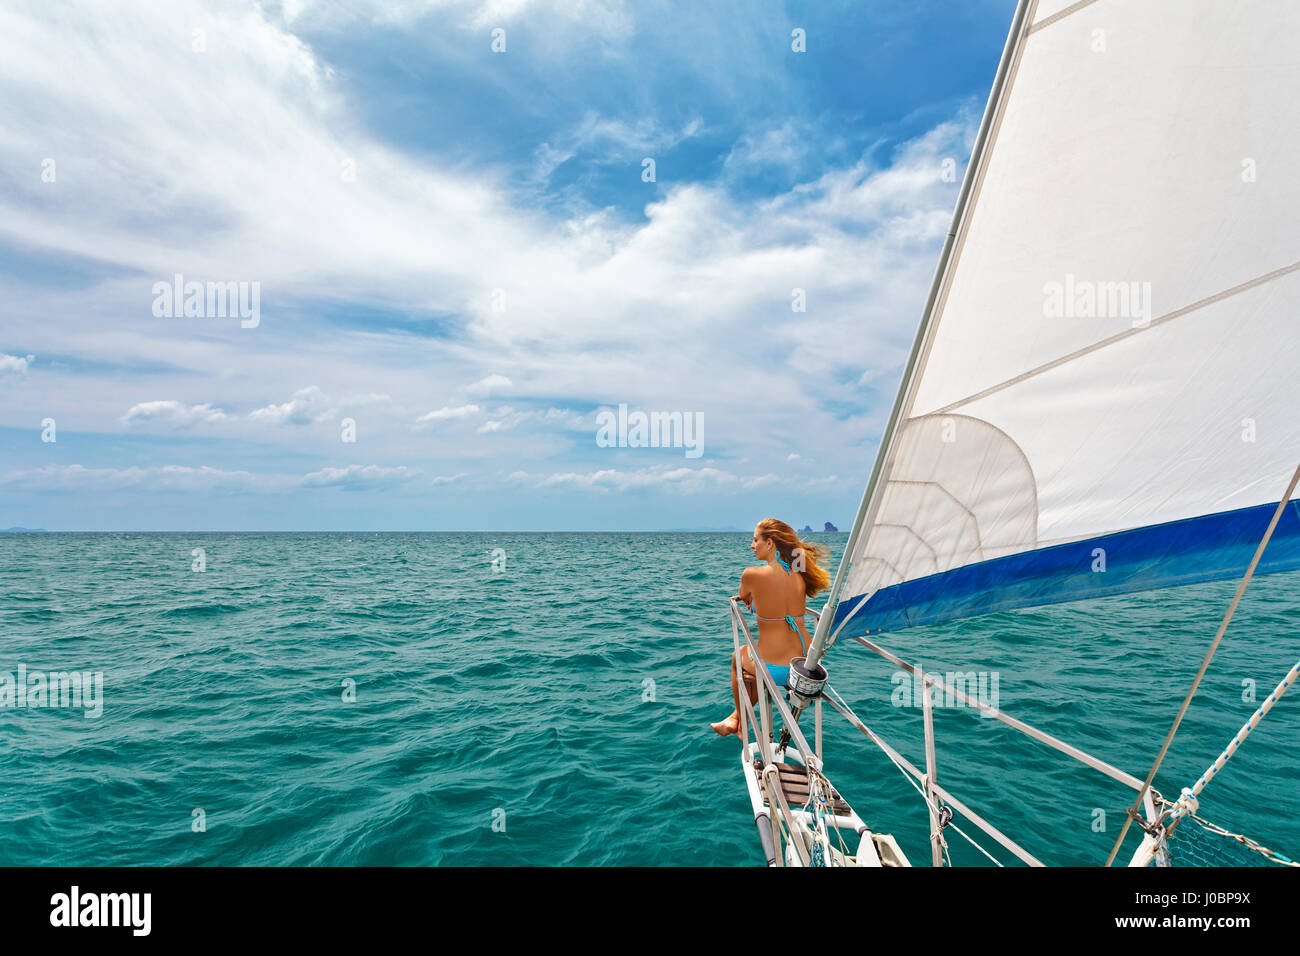 Joyful young woman portrait. Happy girl on board of sailing yacht have fun discovering islands in tropical sea on - Stock Image